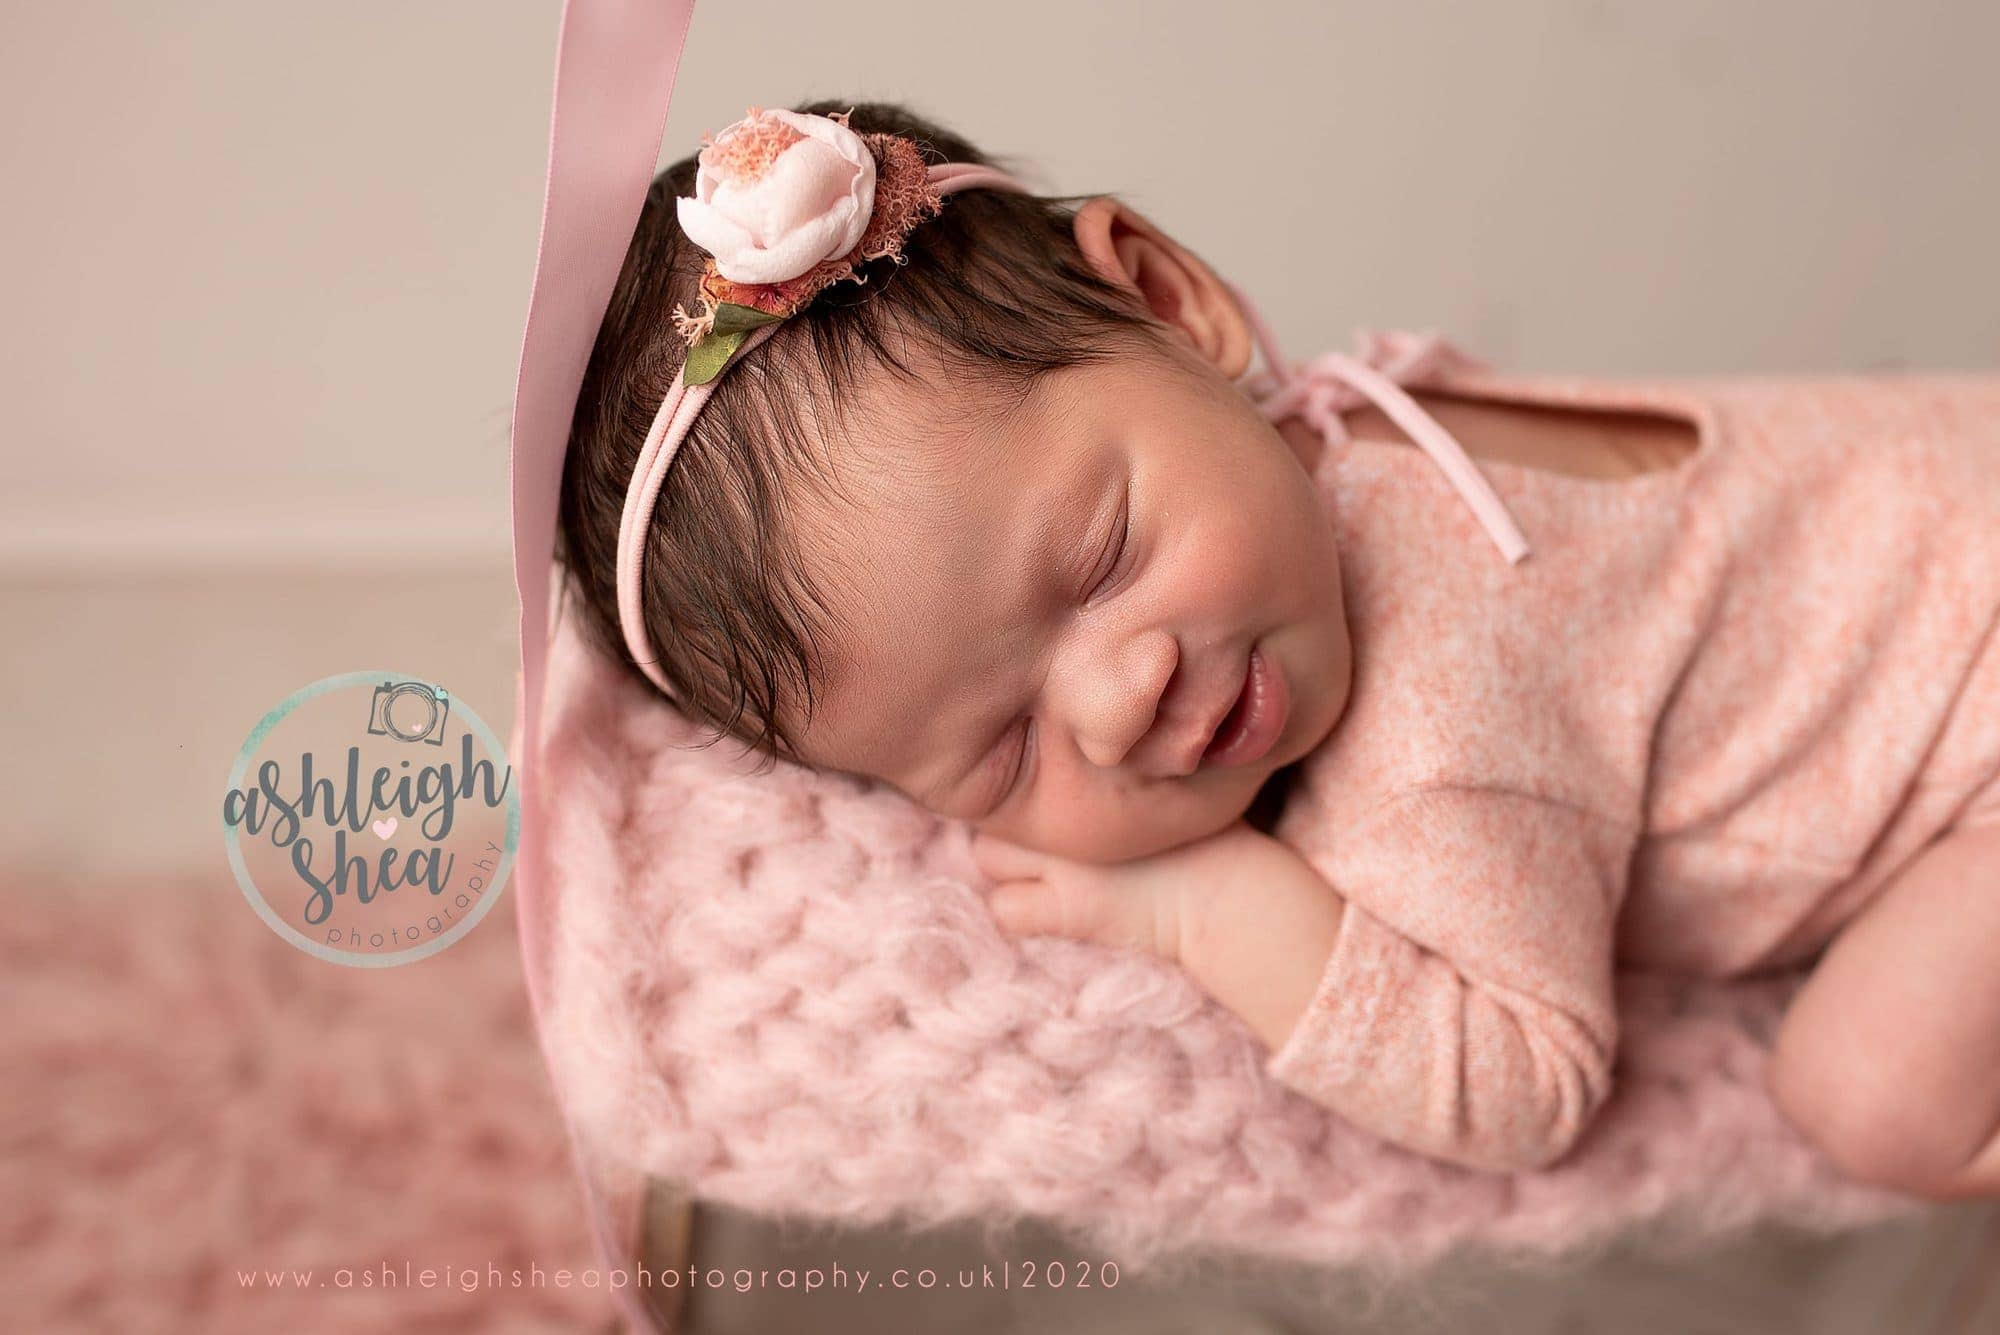 Baby Smiles, Pink, Ivy and Nell, Newborn Session, Ashleigh Shea Photography, Kent, Bromley